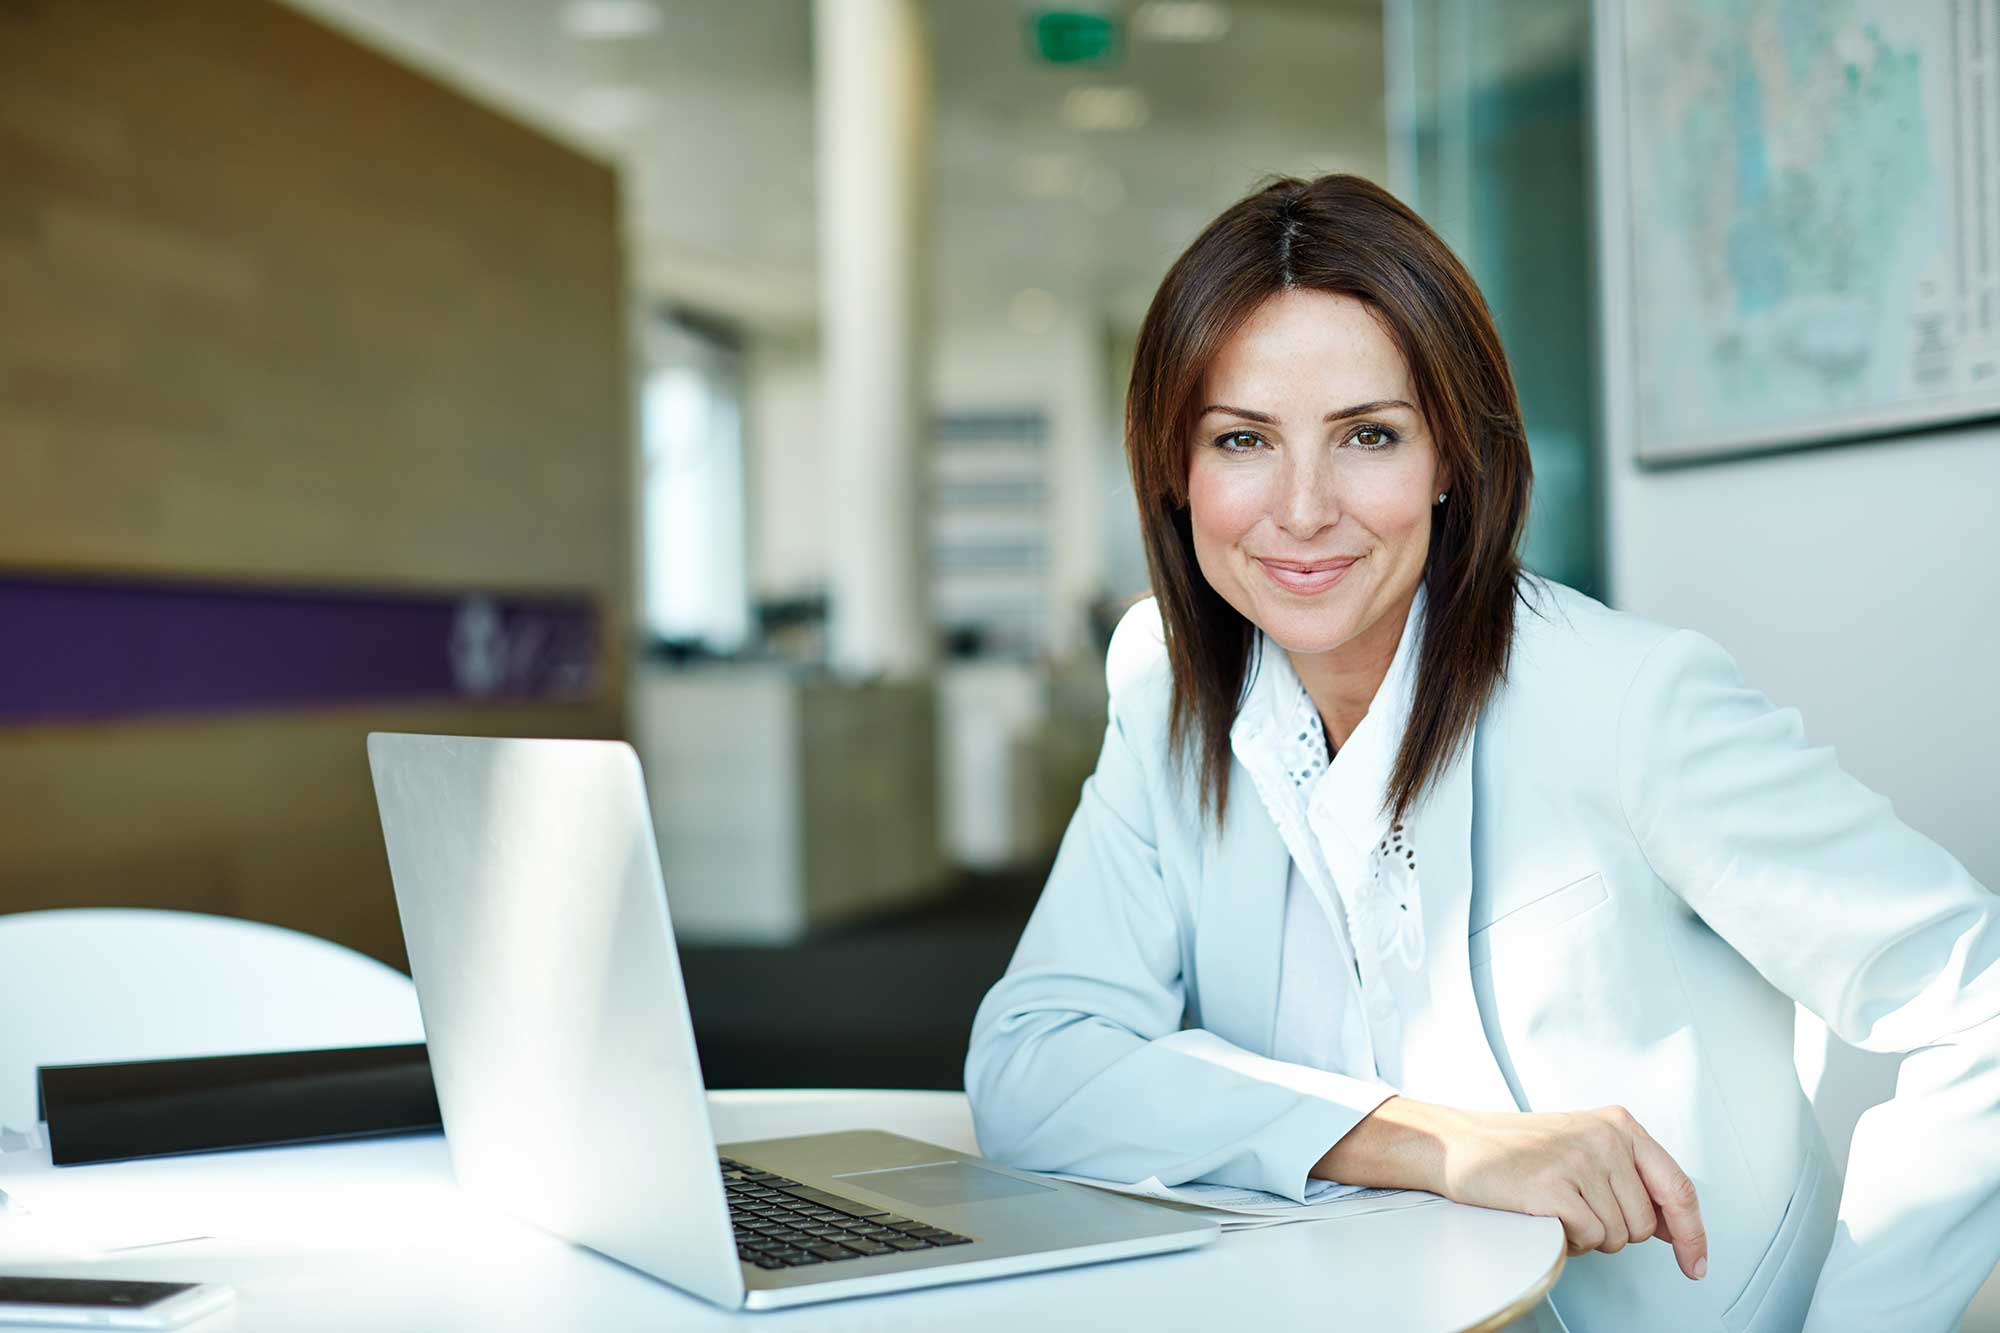 Foto: Frau vor Laptop, Office -